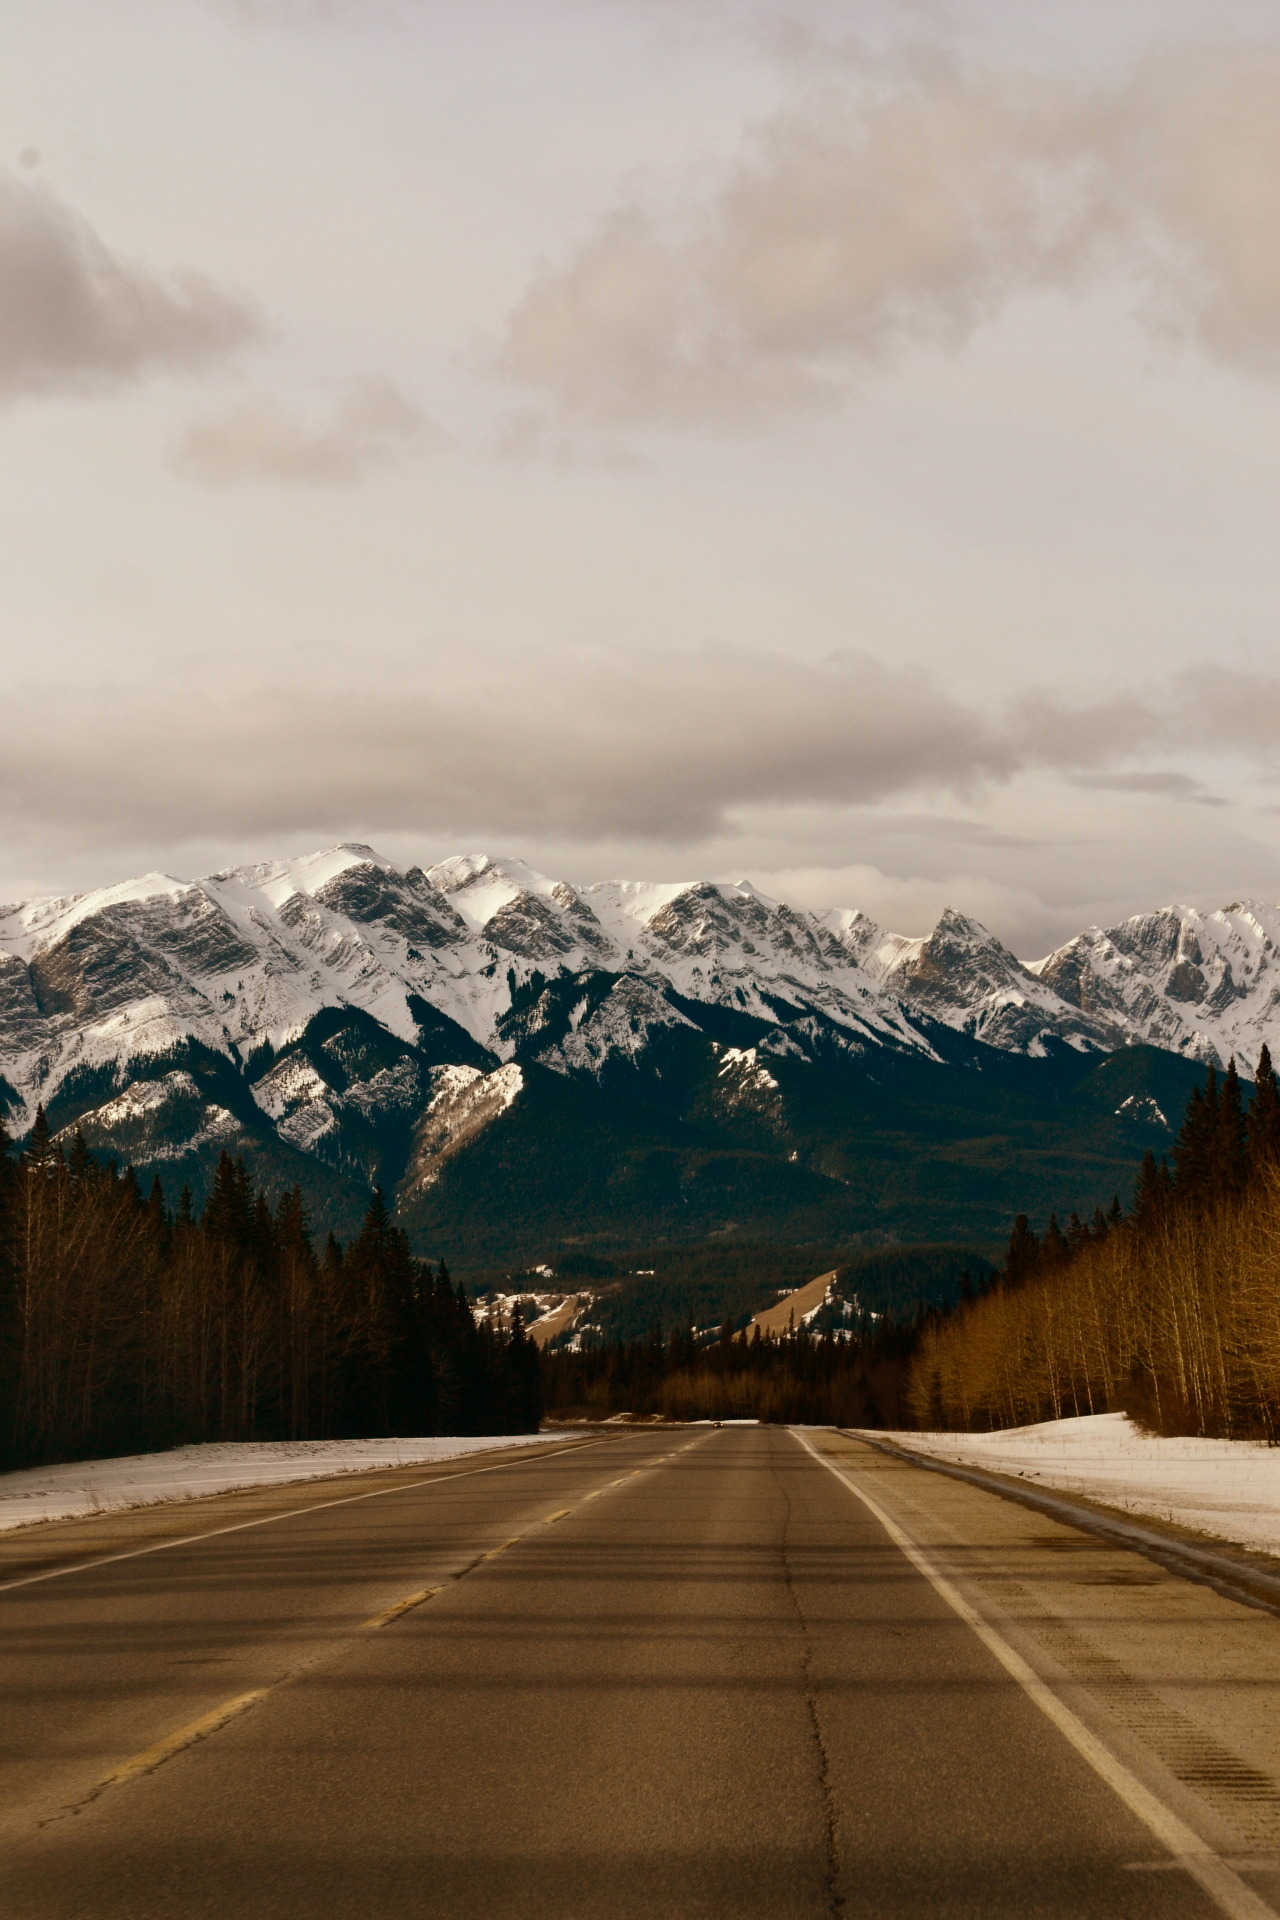 waittilthesunshines:  My weekend: Jasper National Park